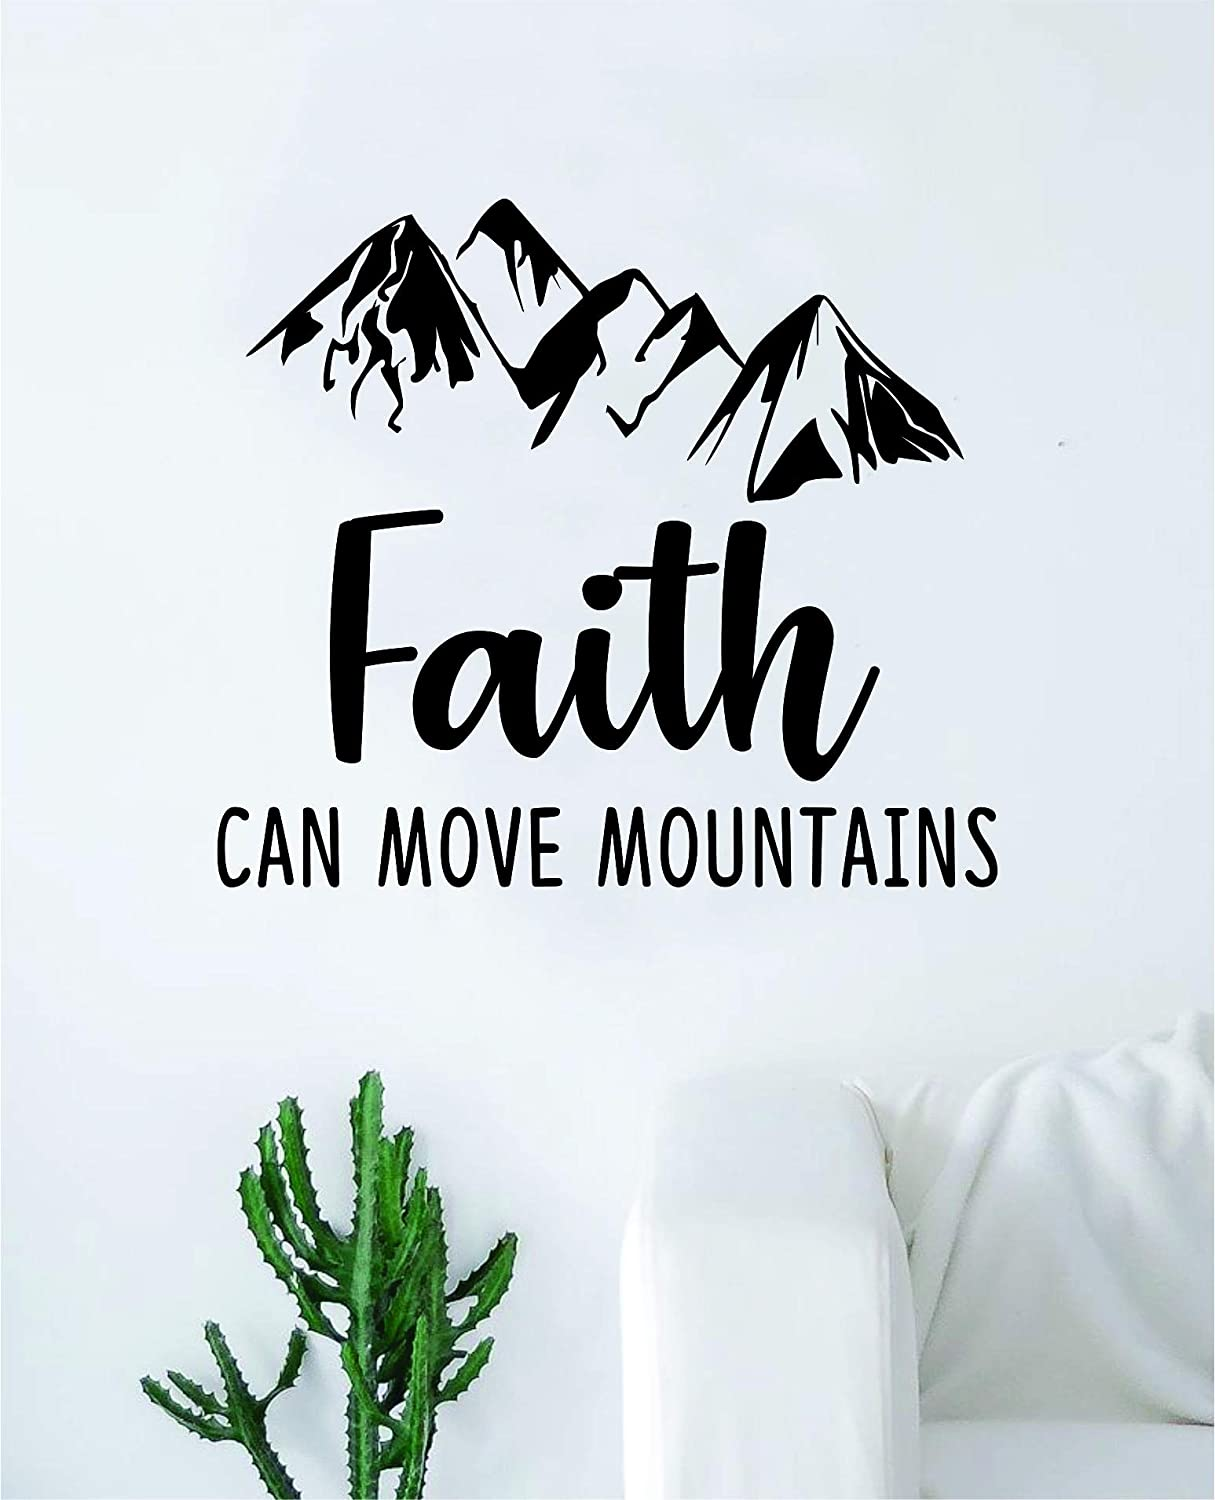 Faith Can Move Mountains Wall Decal Sticker Vinyl Art Bedroom Living Room Decor Decoration Teen Quote Inspirational Boy Girl Church Religious Religion Jesus Amen Blessed Verse God Love